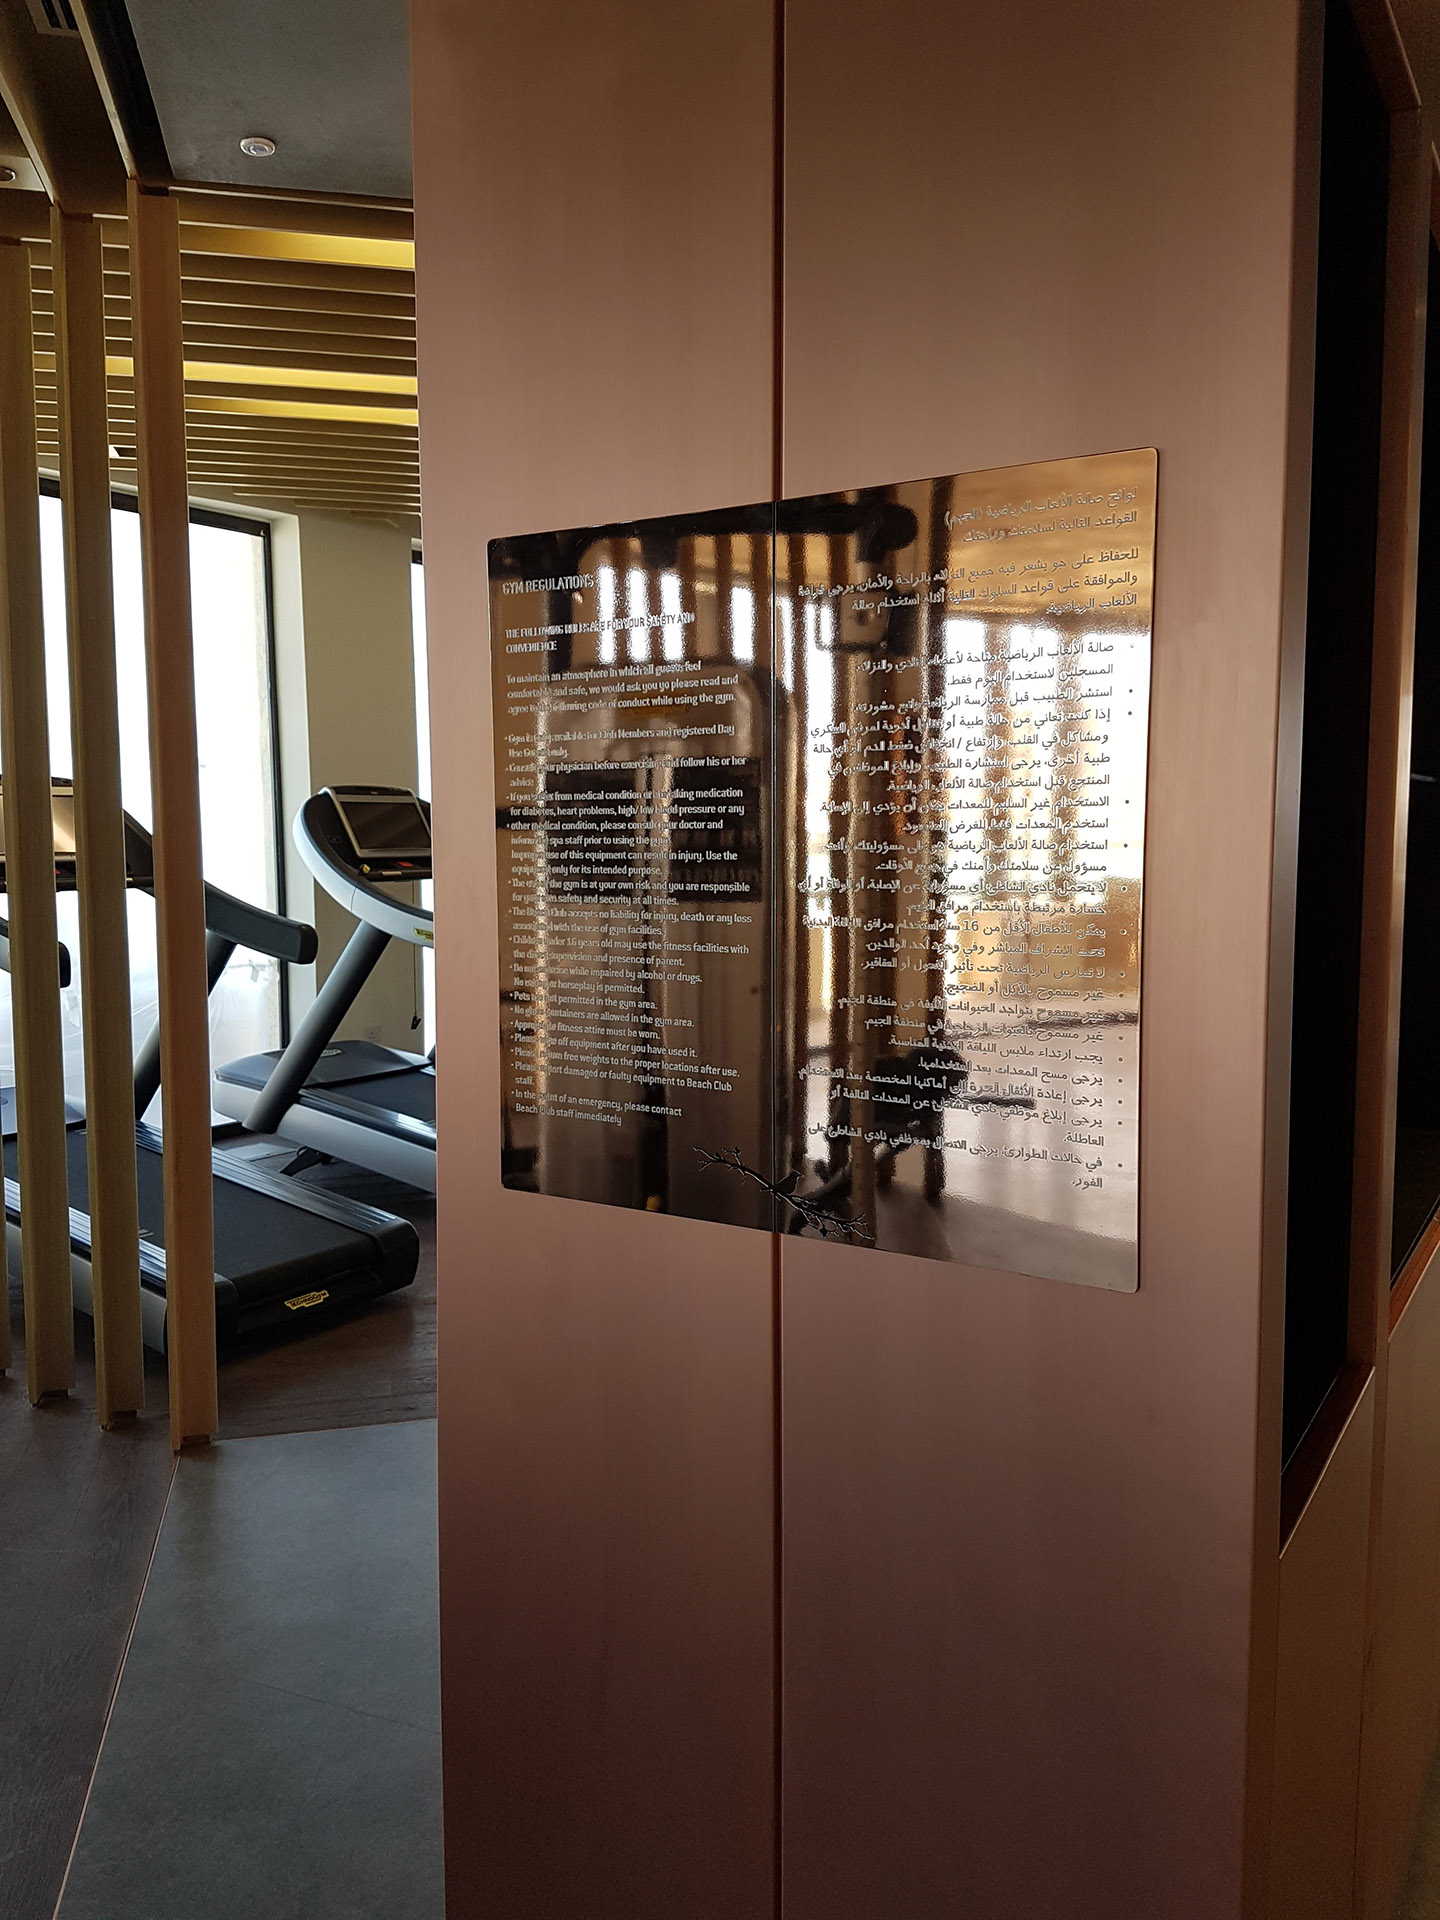 Internal Signs made from pure copper for Katara Beach Club - LivNordic Spa & Wellness fabricated and installed by ME Visual, Qatar